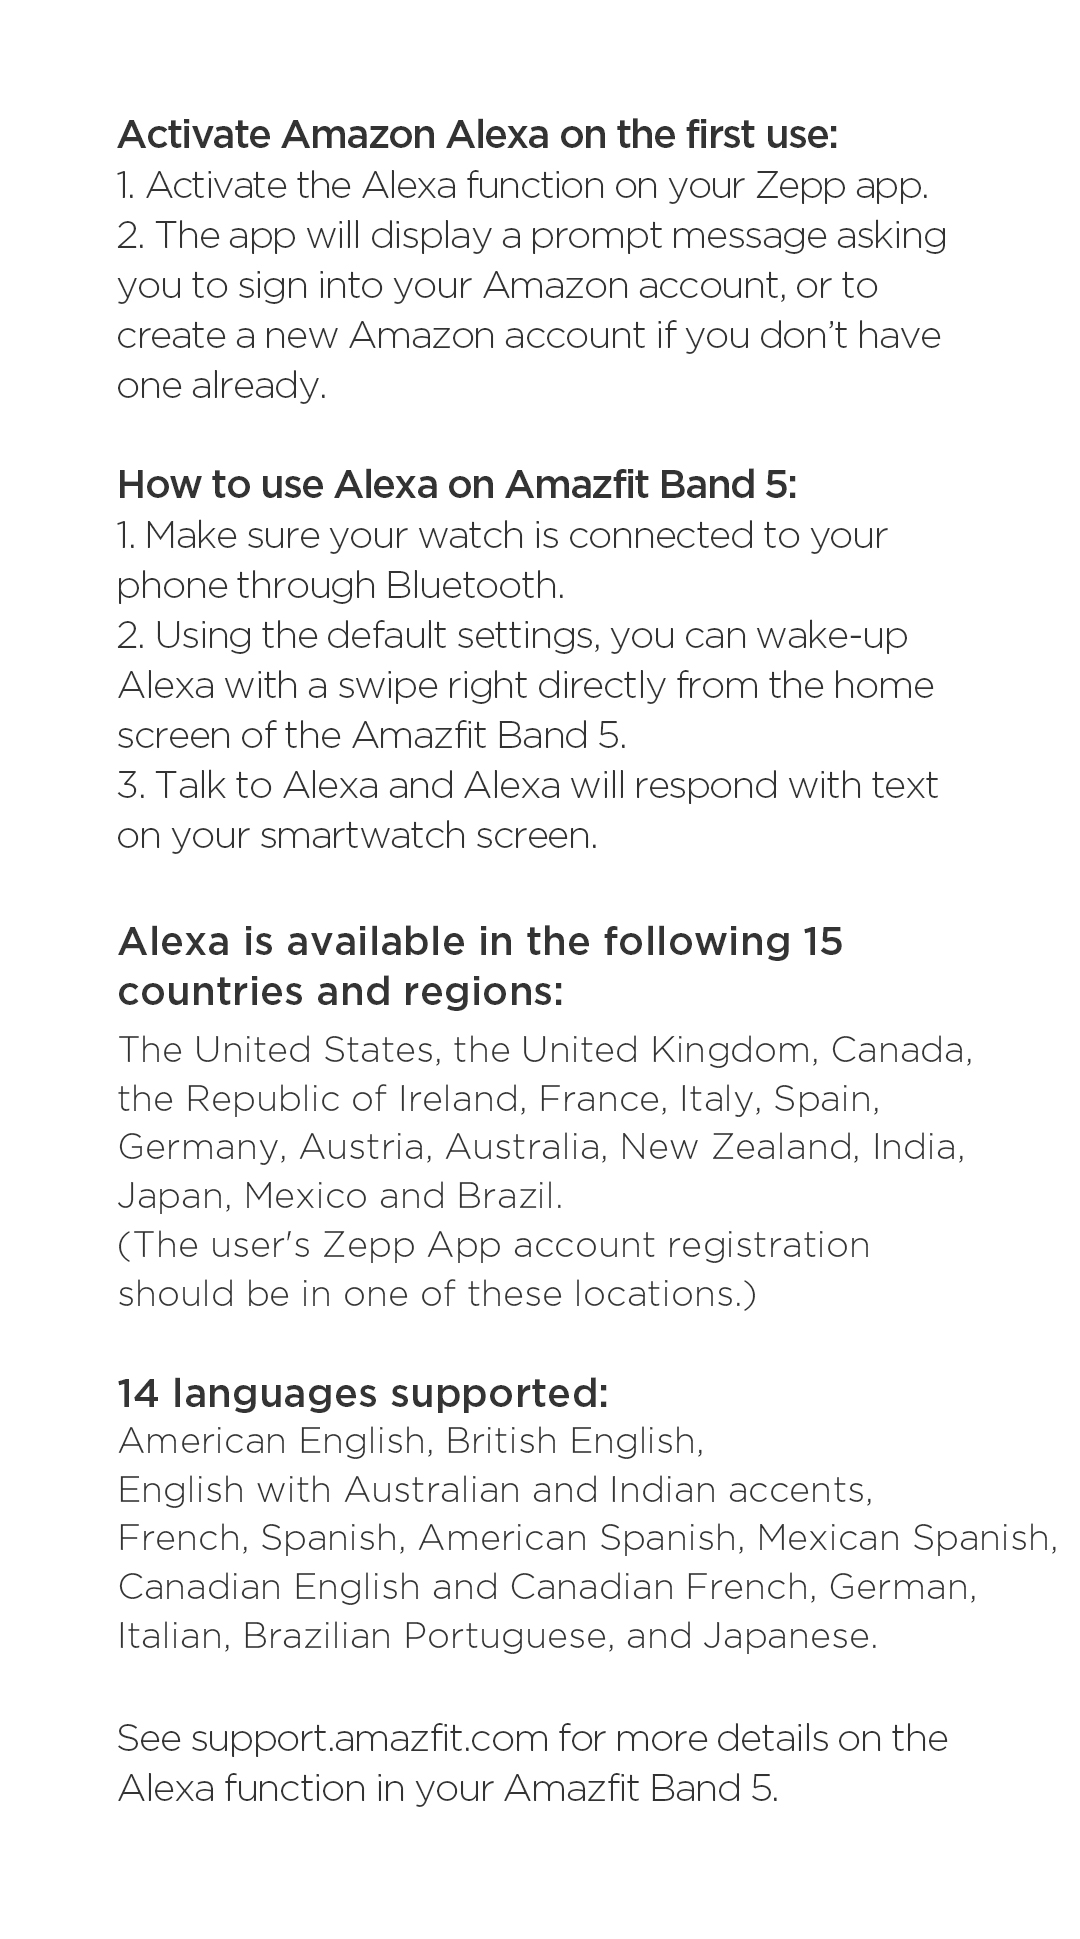 Amazfit Band 5 Product Specifications